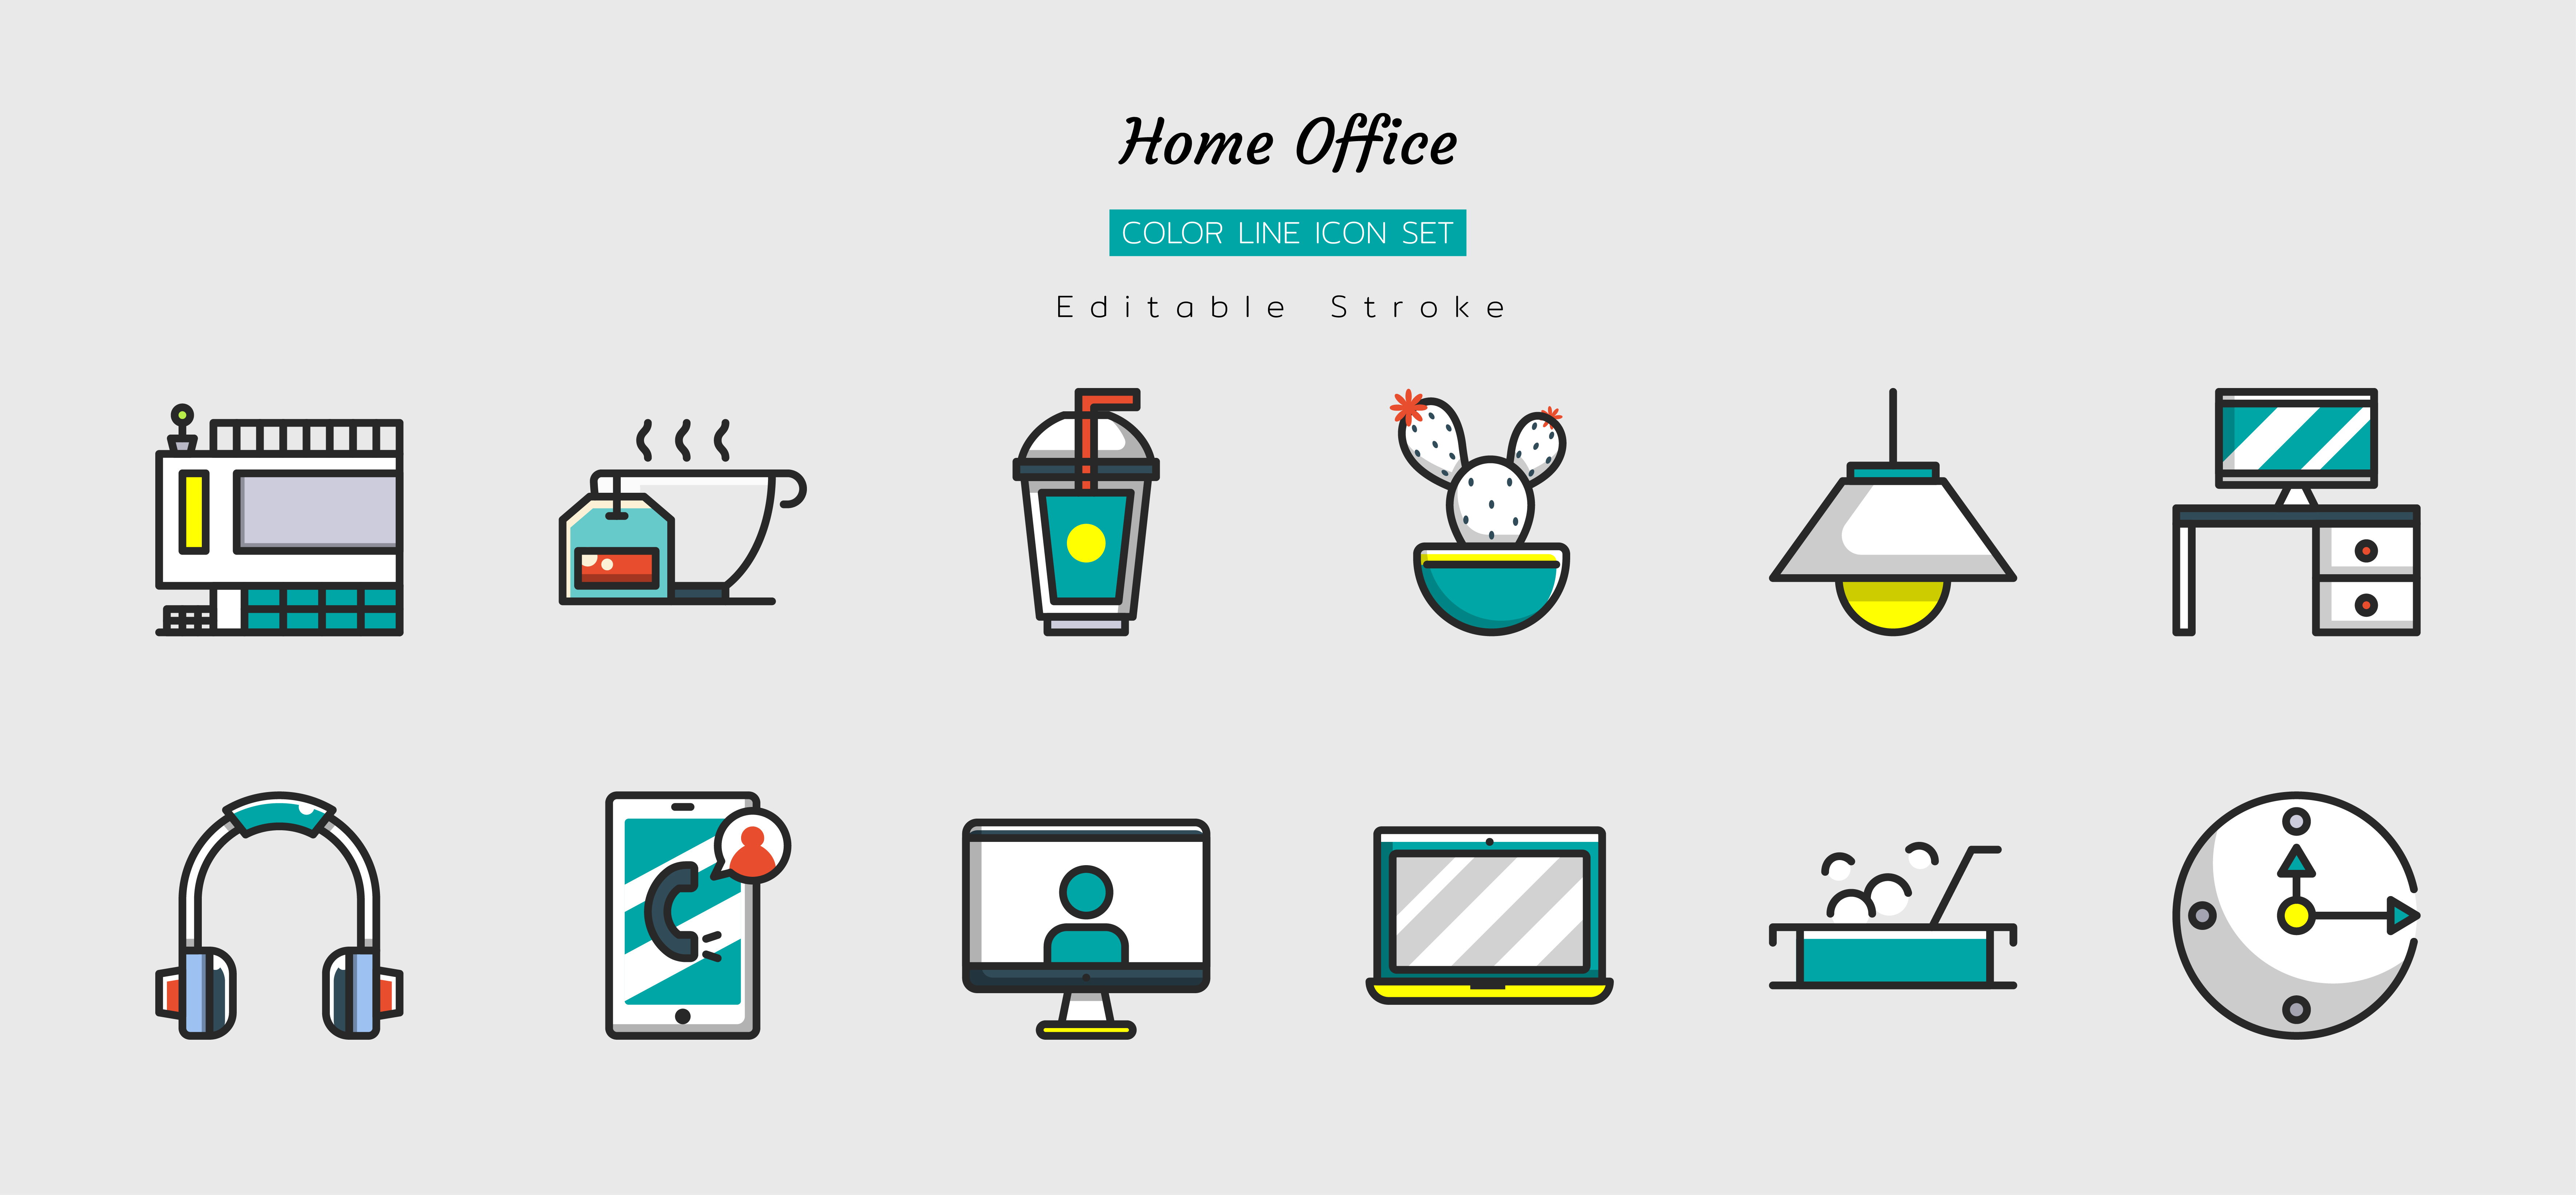 Filled color line home office icon symbol set vector